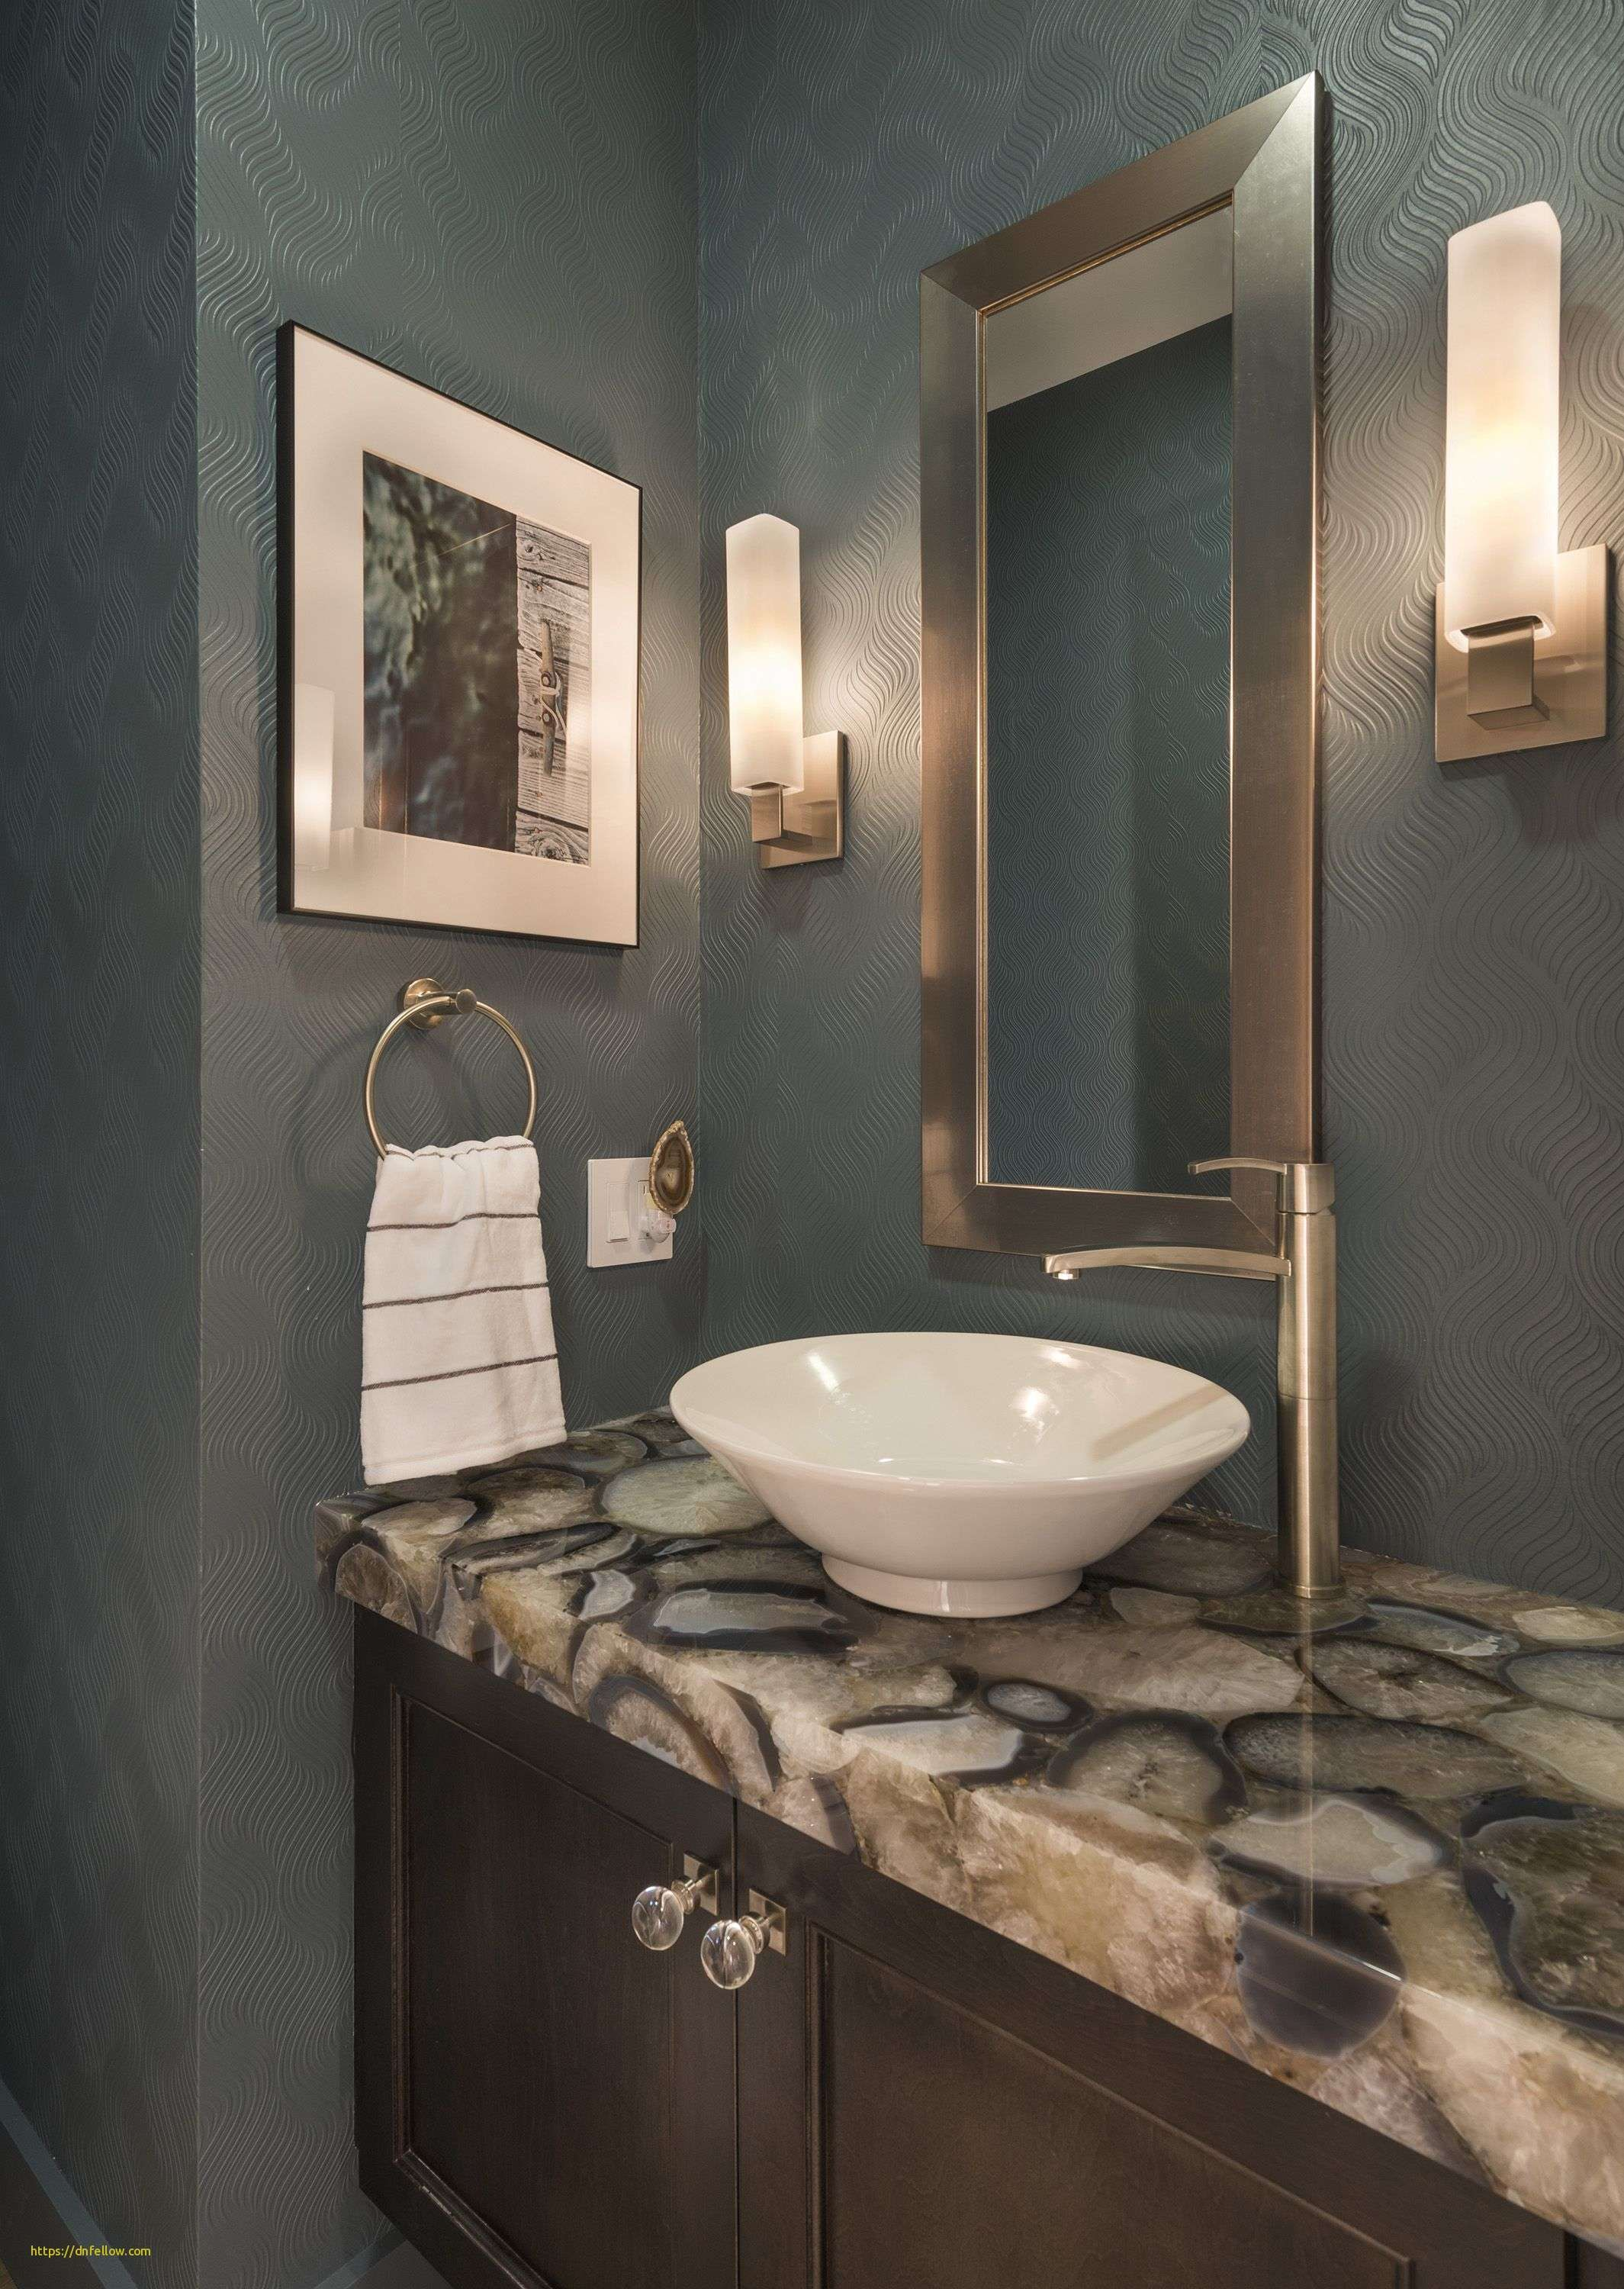 Unique Small Bathroom Designs Unique Small Bathroom Designs     Unique Small Bathroom Designs Unique Small Bathroom Designs   Allowed to  our website  in this period I m going to https   dnfellow com